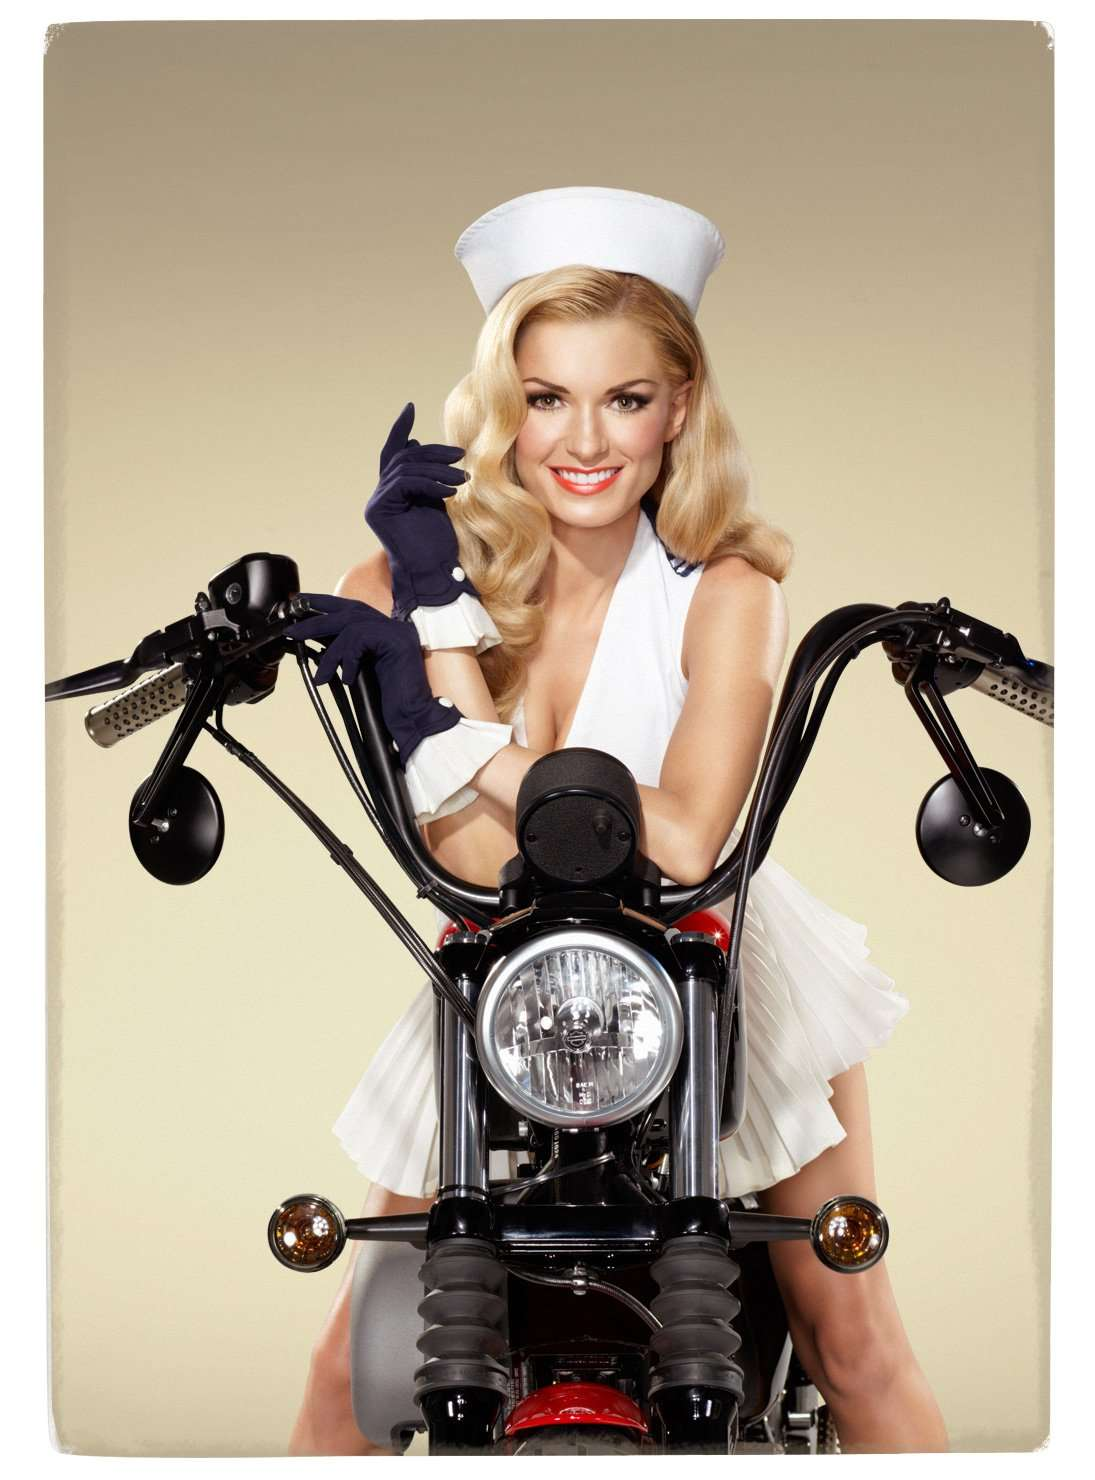 Ww2 Pin Up Girl Wallpaper Soldier Pin Up Marisa Miller Is A Closet Harley Rider